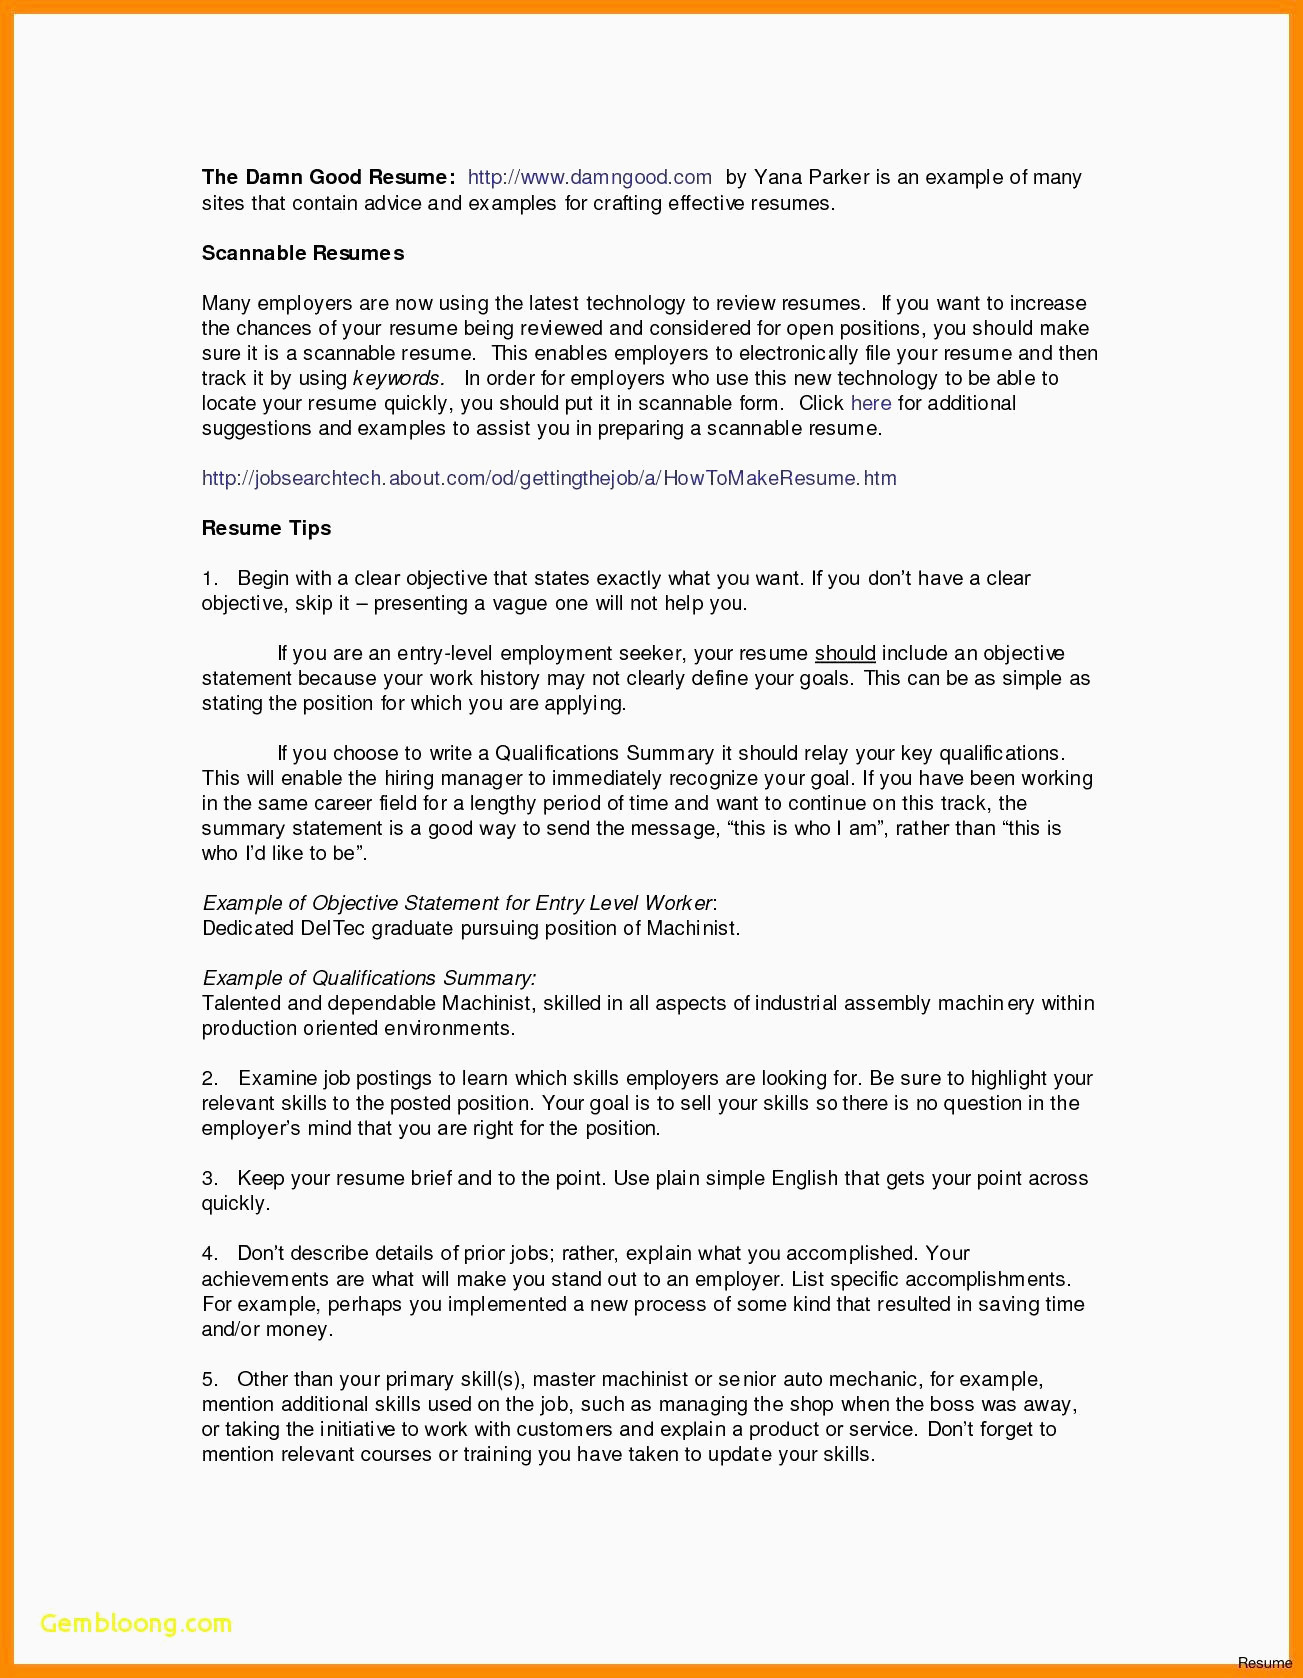 Lettre De Motivation Licence Rh Alternance 42 Inspirant De Lettre De Motivation Alternance Rh